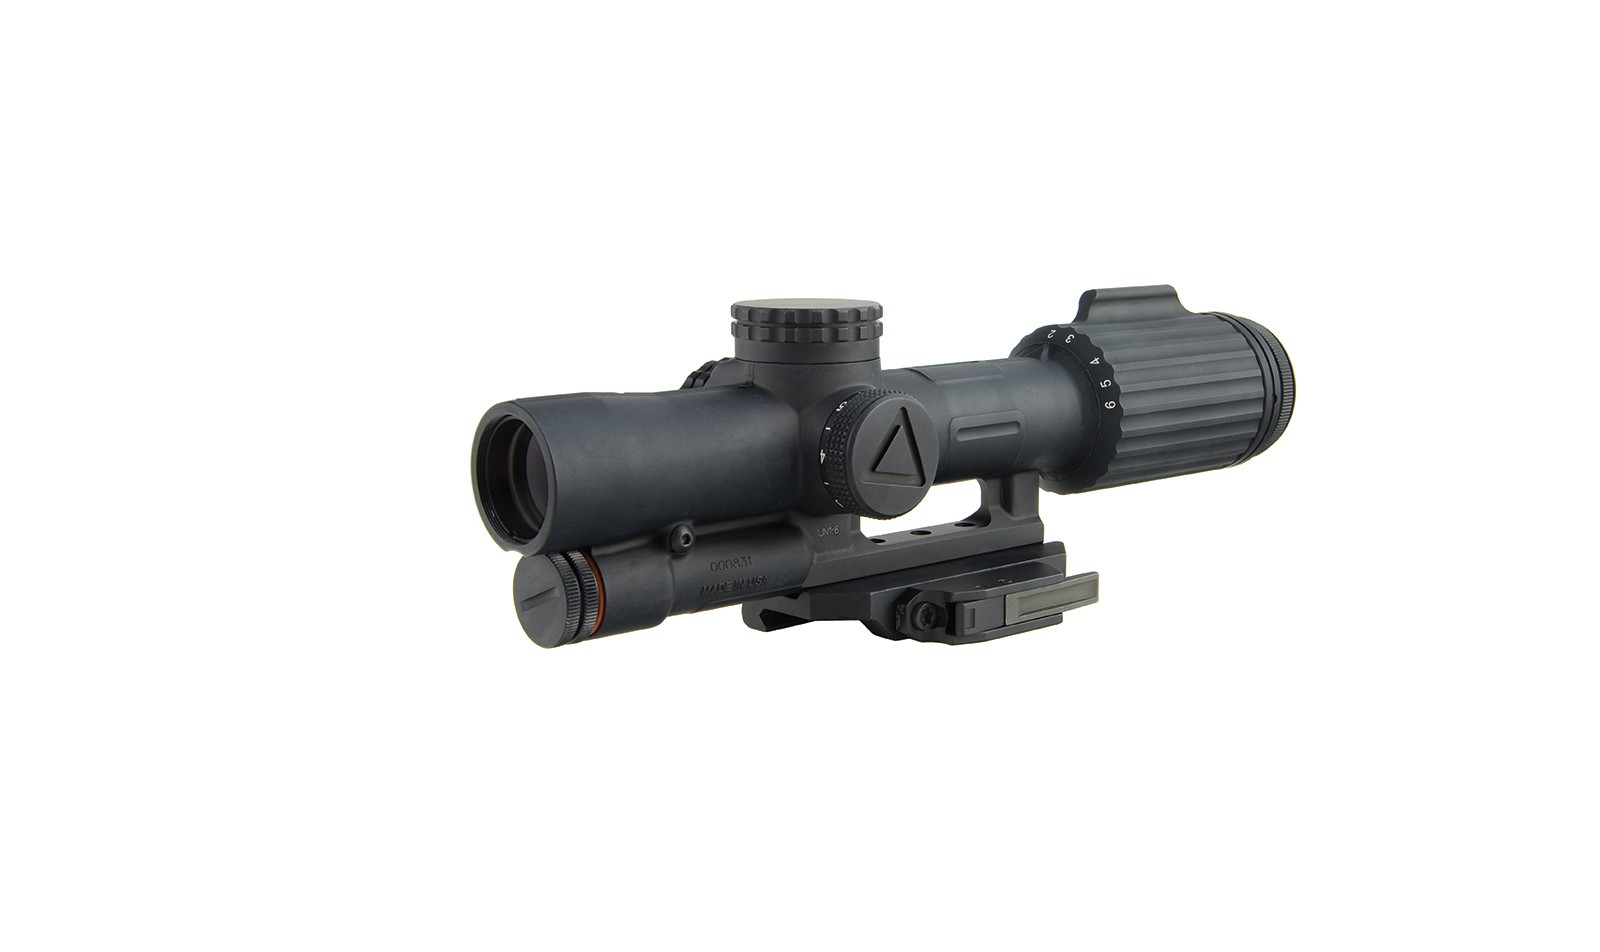 Trijicon VCOG® 1-6x24 LED Riflescope - .308 / 175 Grain